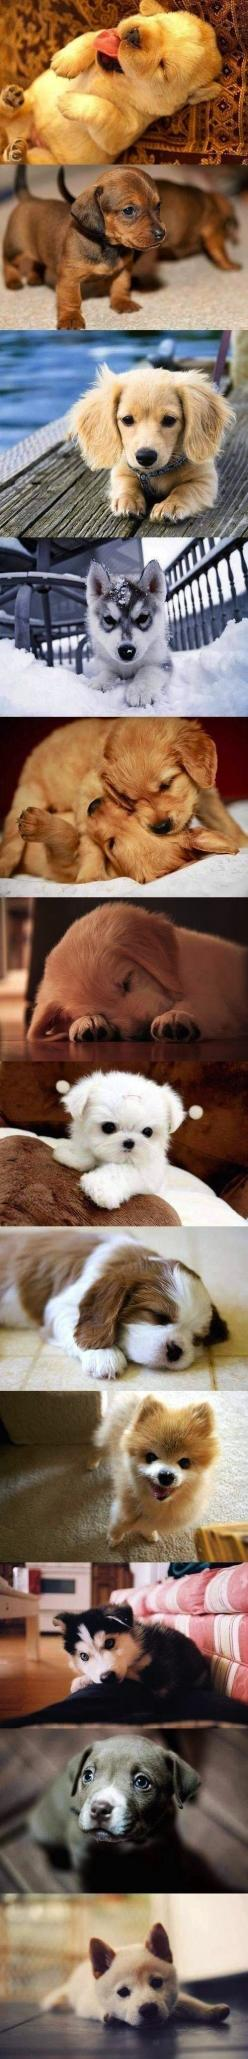 I love animal,i would take all of them,so cute!!!!!! We will add another soon enough!: Cutest Puppy, Cute Puppies, Dogs, Cute Puppy, Puppys, Baby Animal